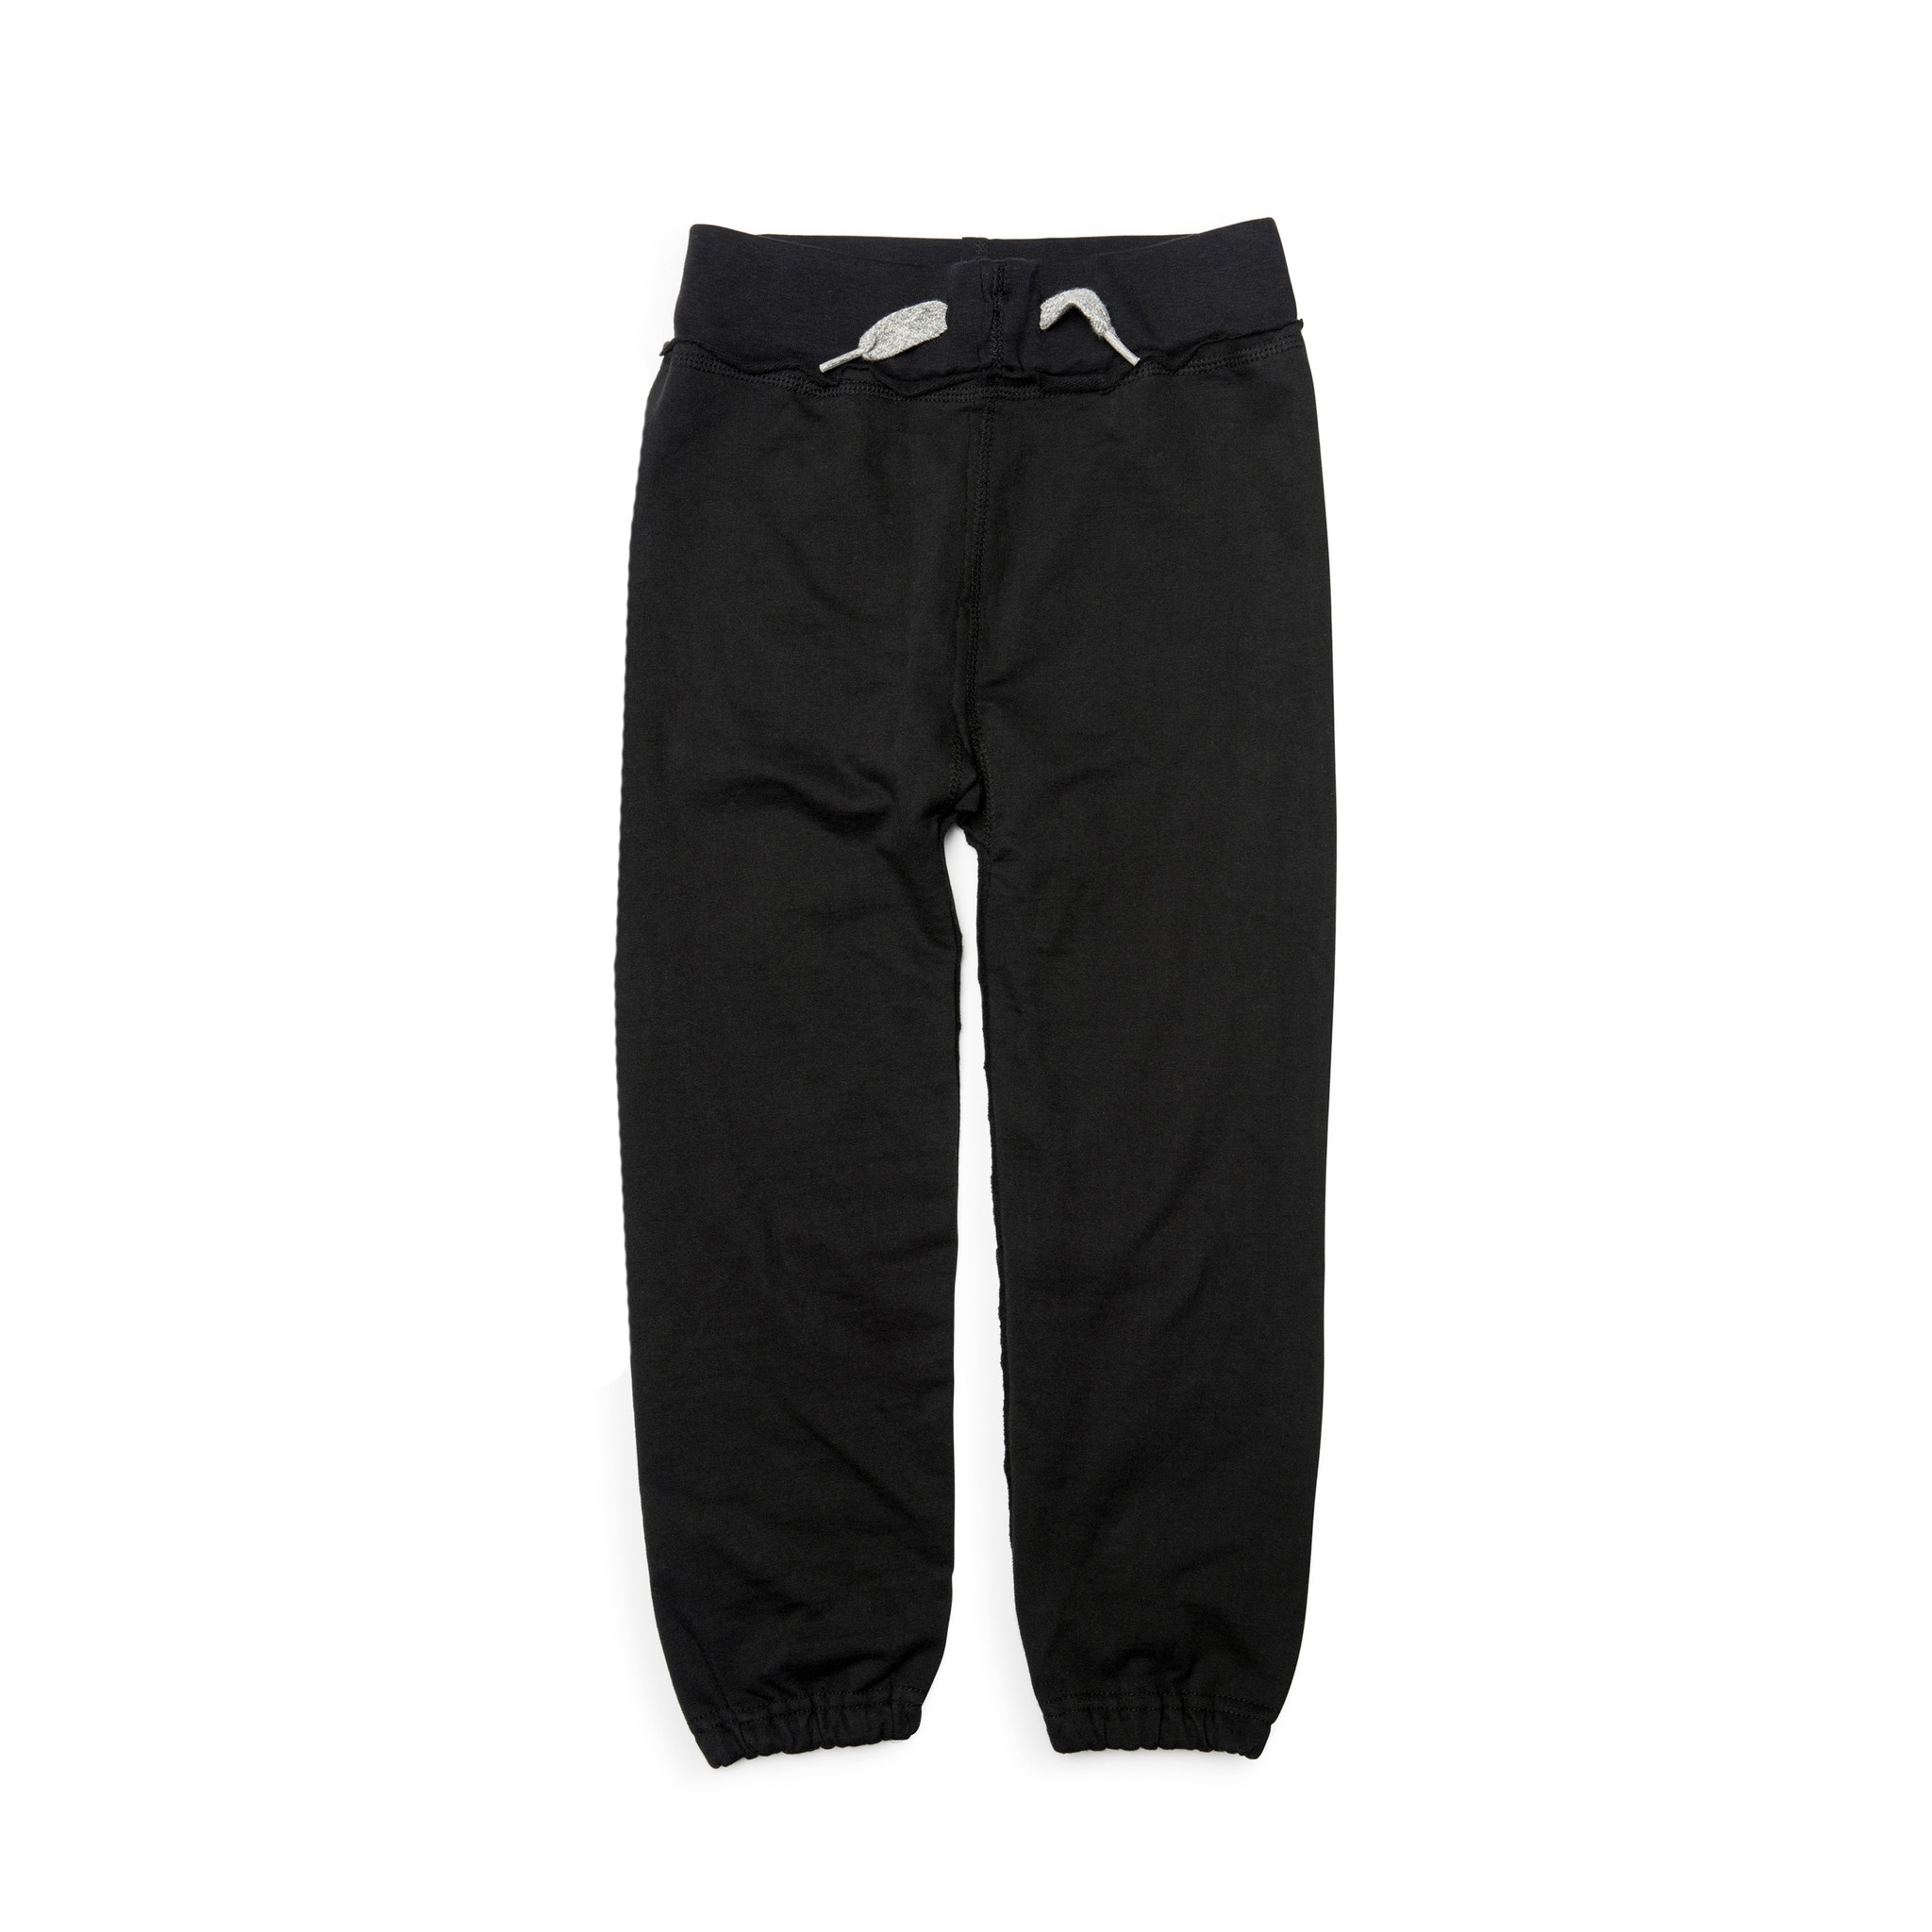 Appaman Black Gym Sweats